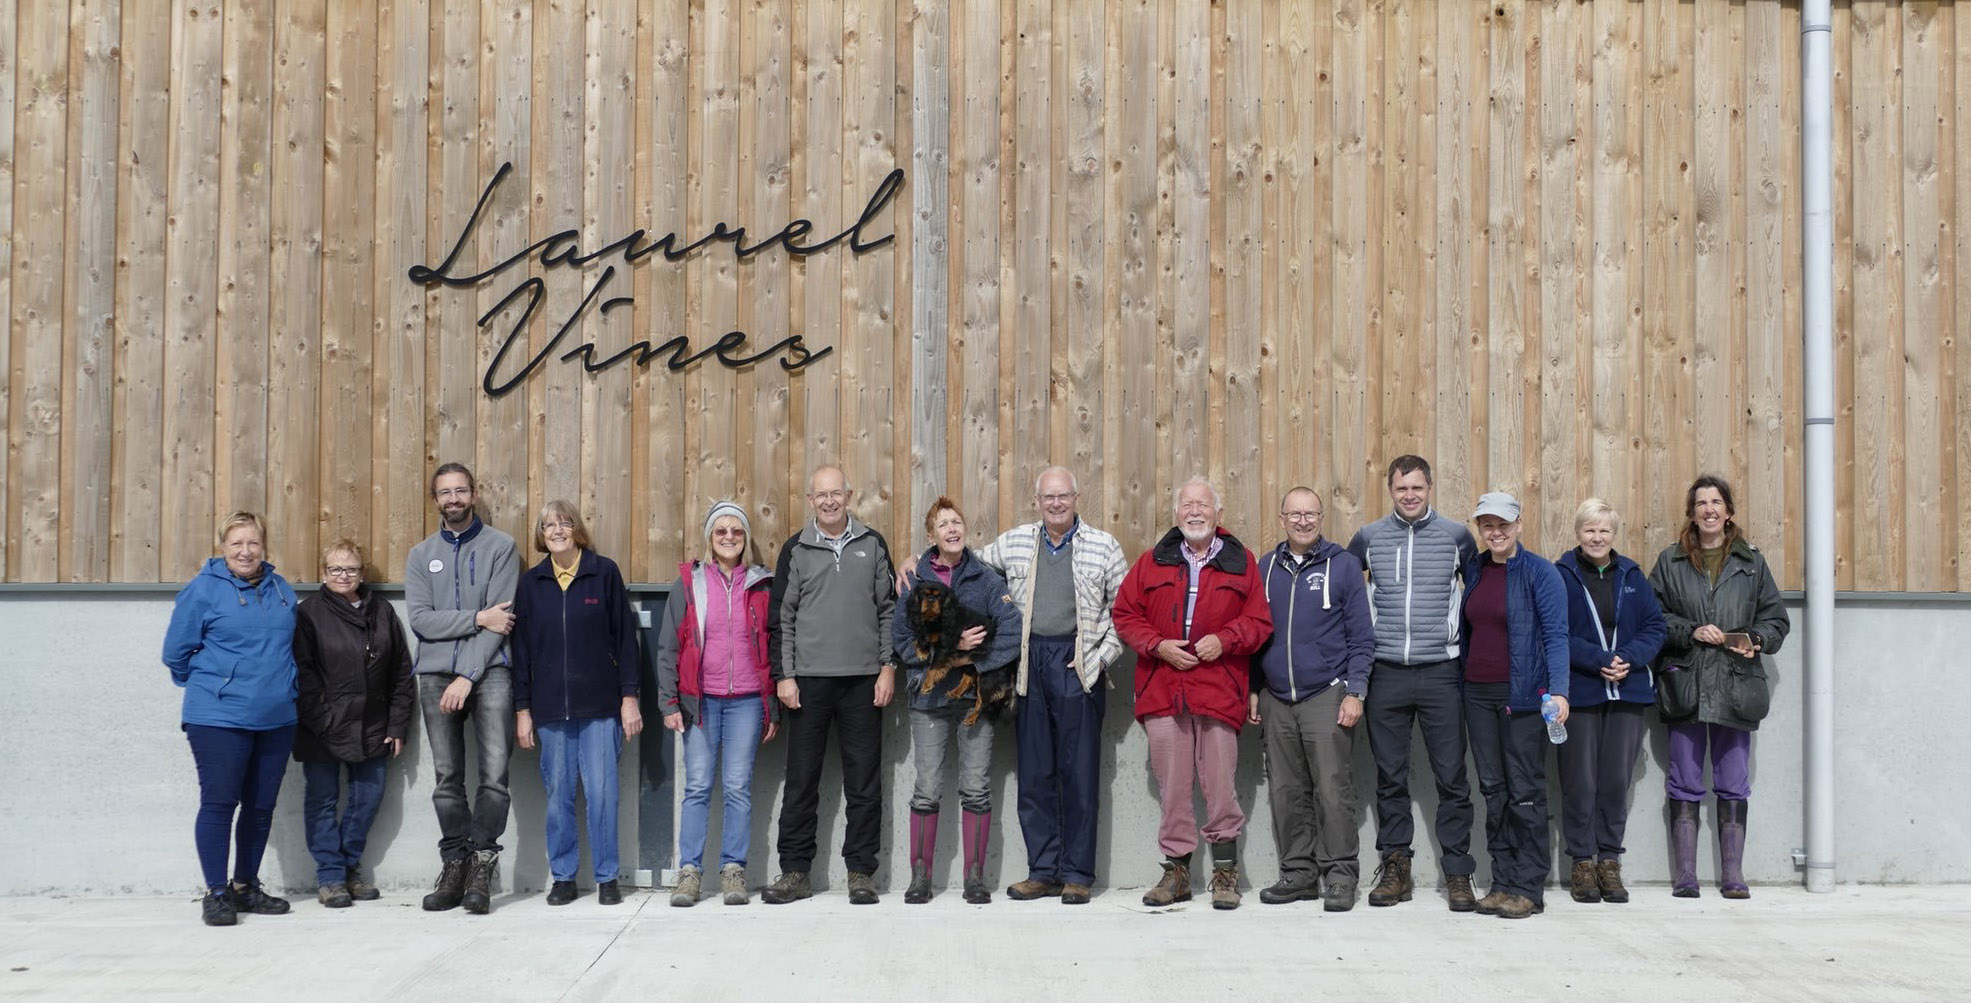 Visit Laurel Vines English Vineyard Wine Cellar Door